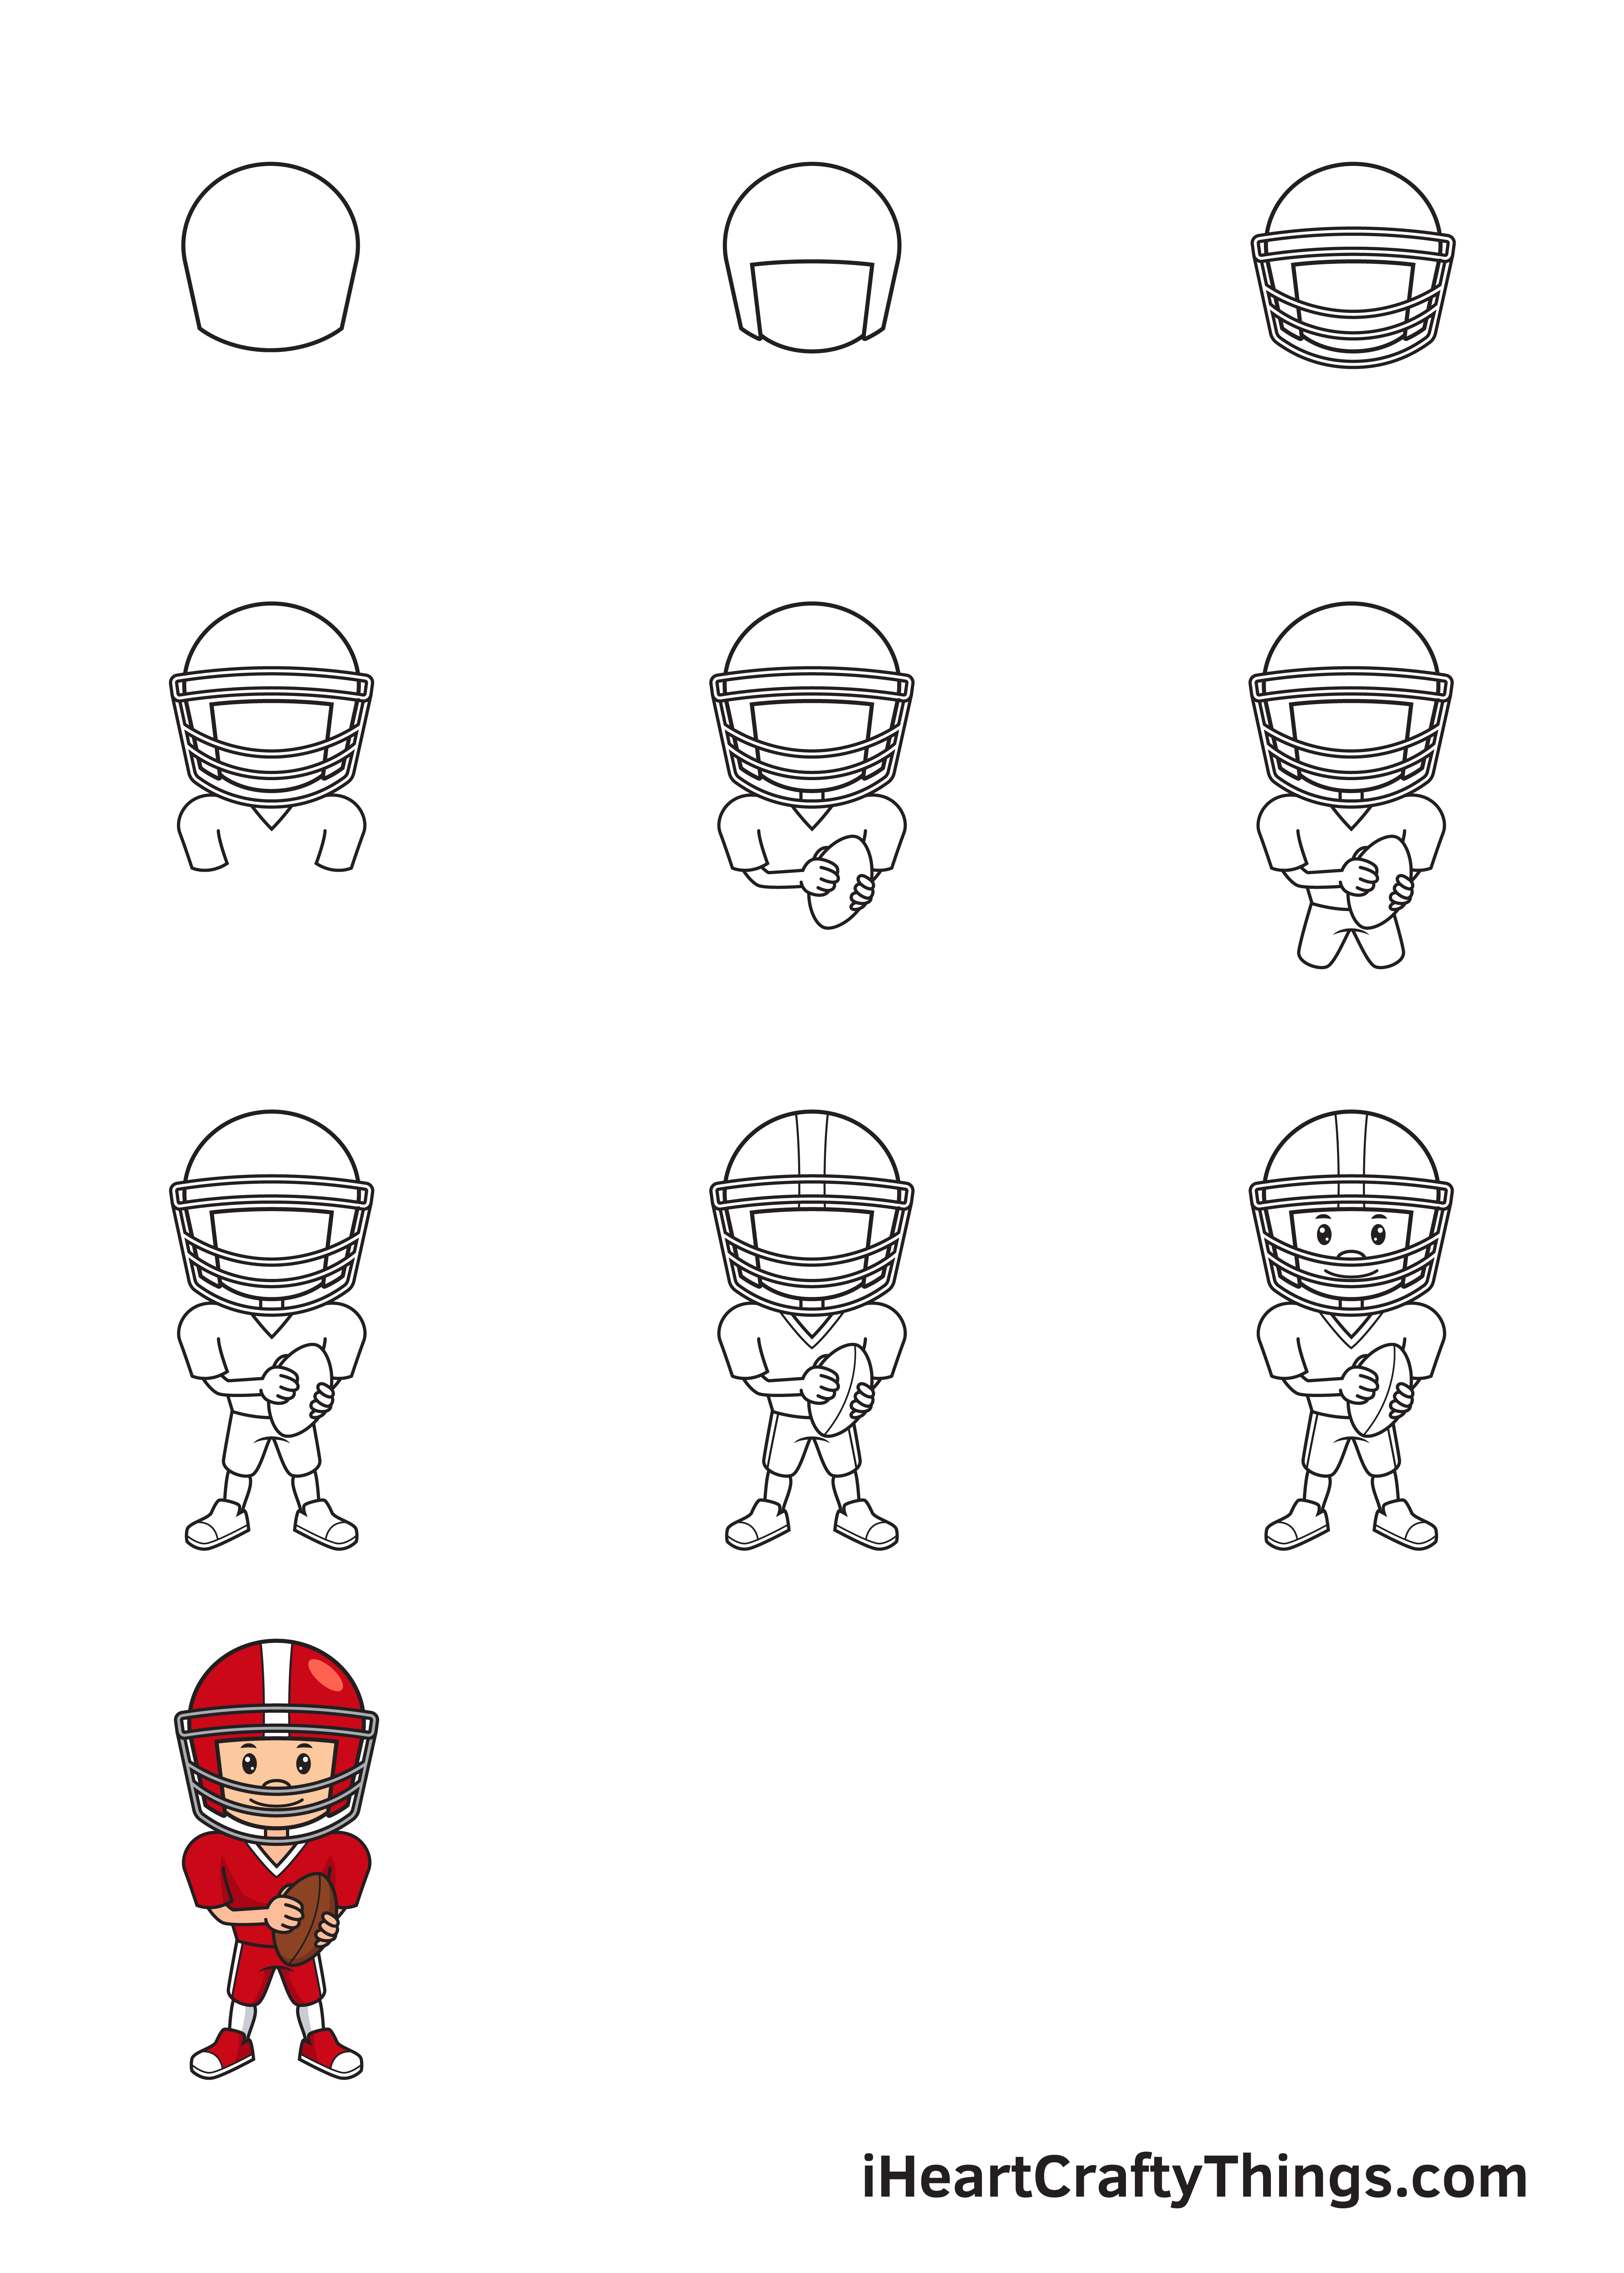 drawing football player in 9 steps